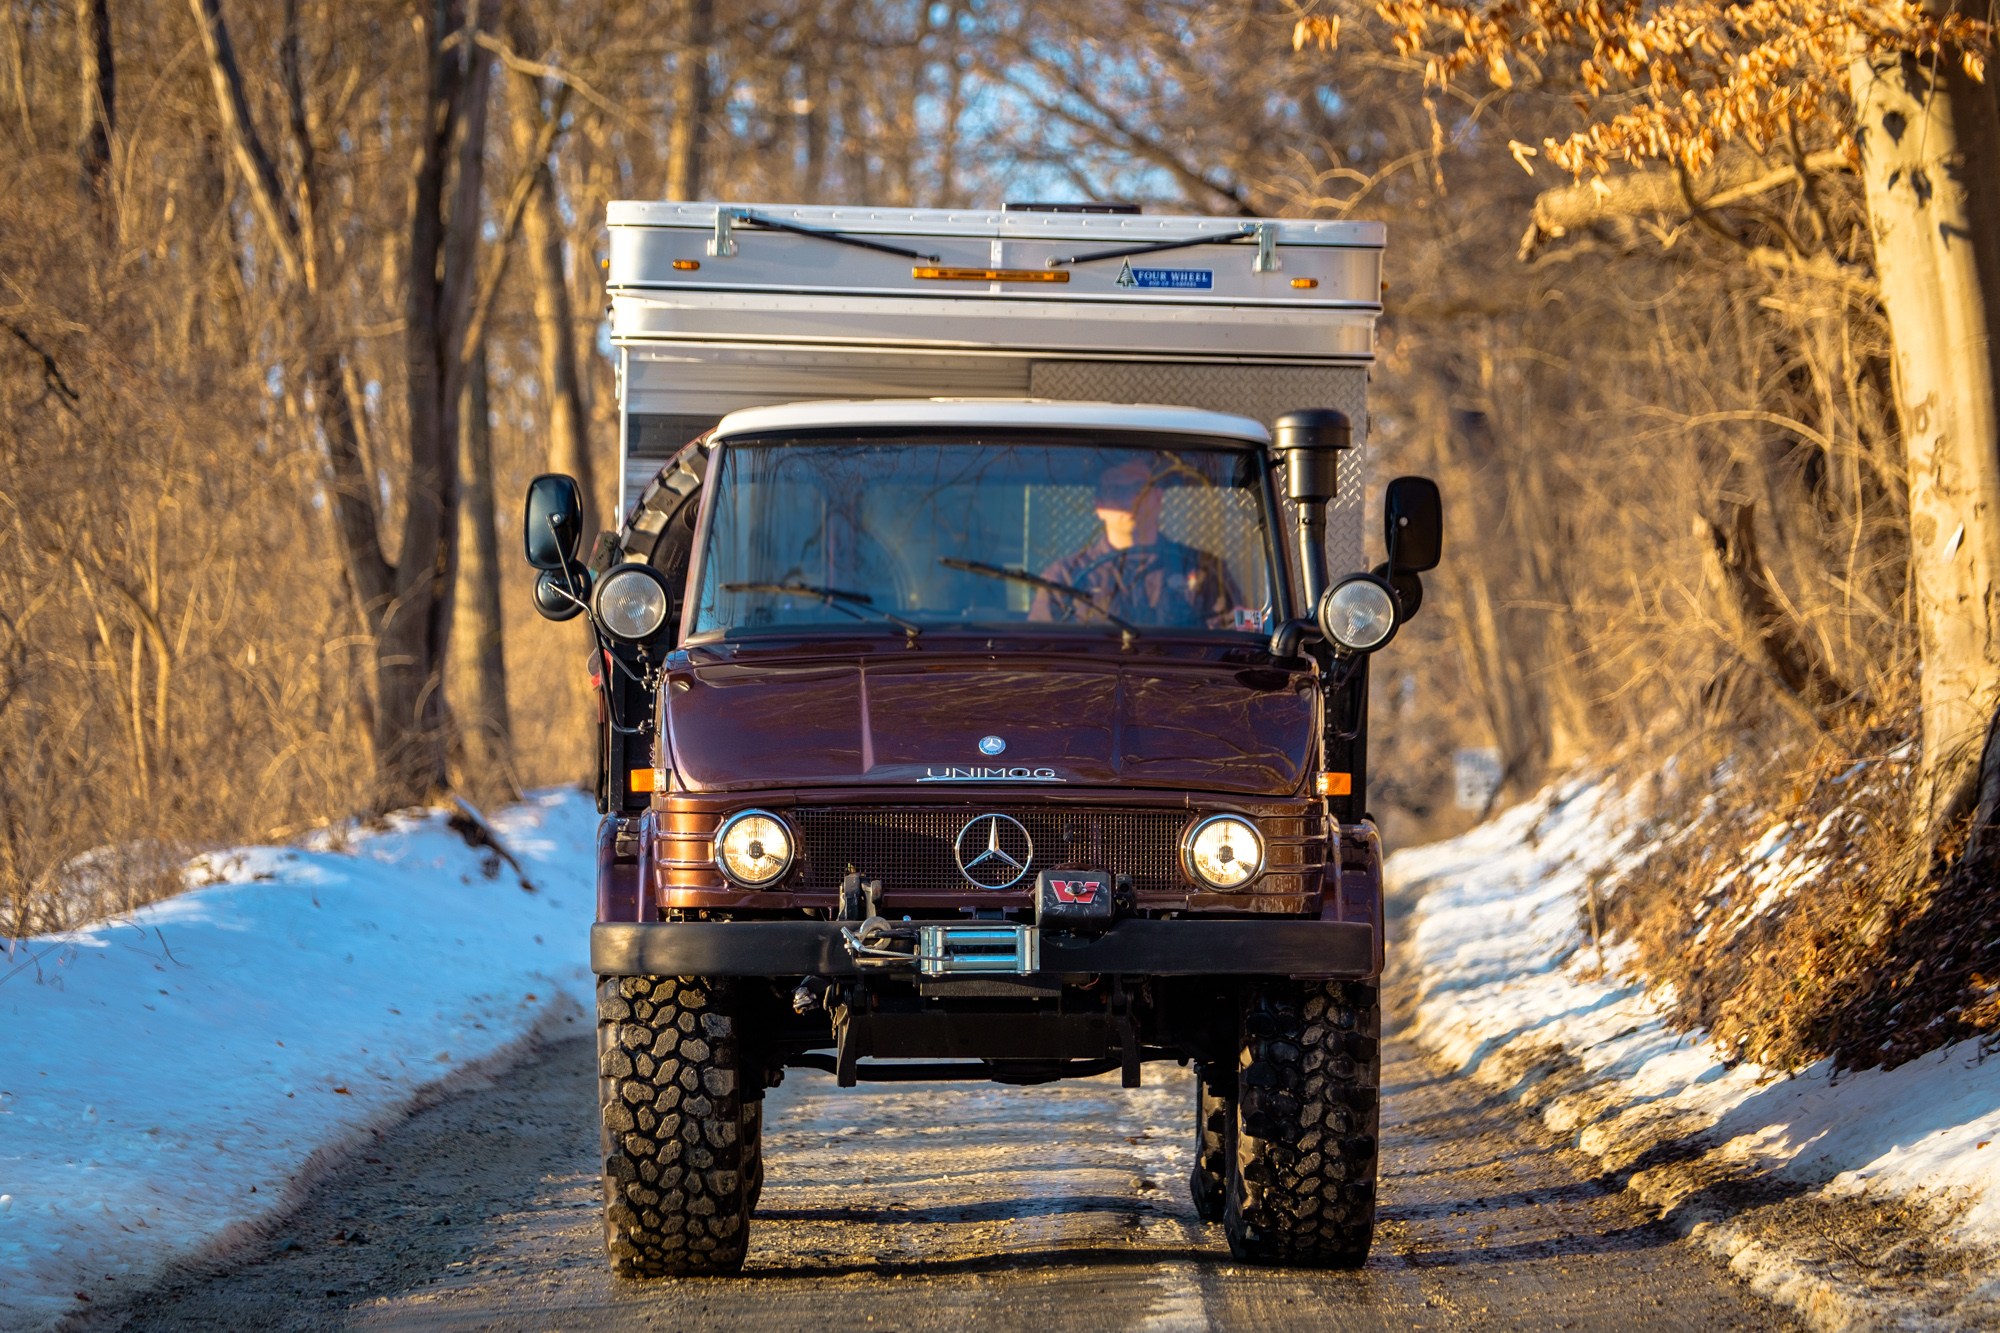 Front view of the Unimog Off Road Mercedes cruising down a snowy road